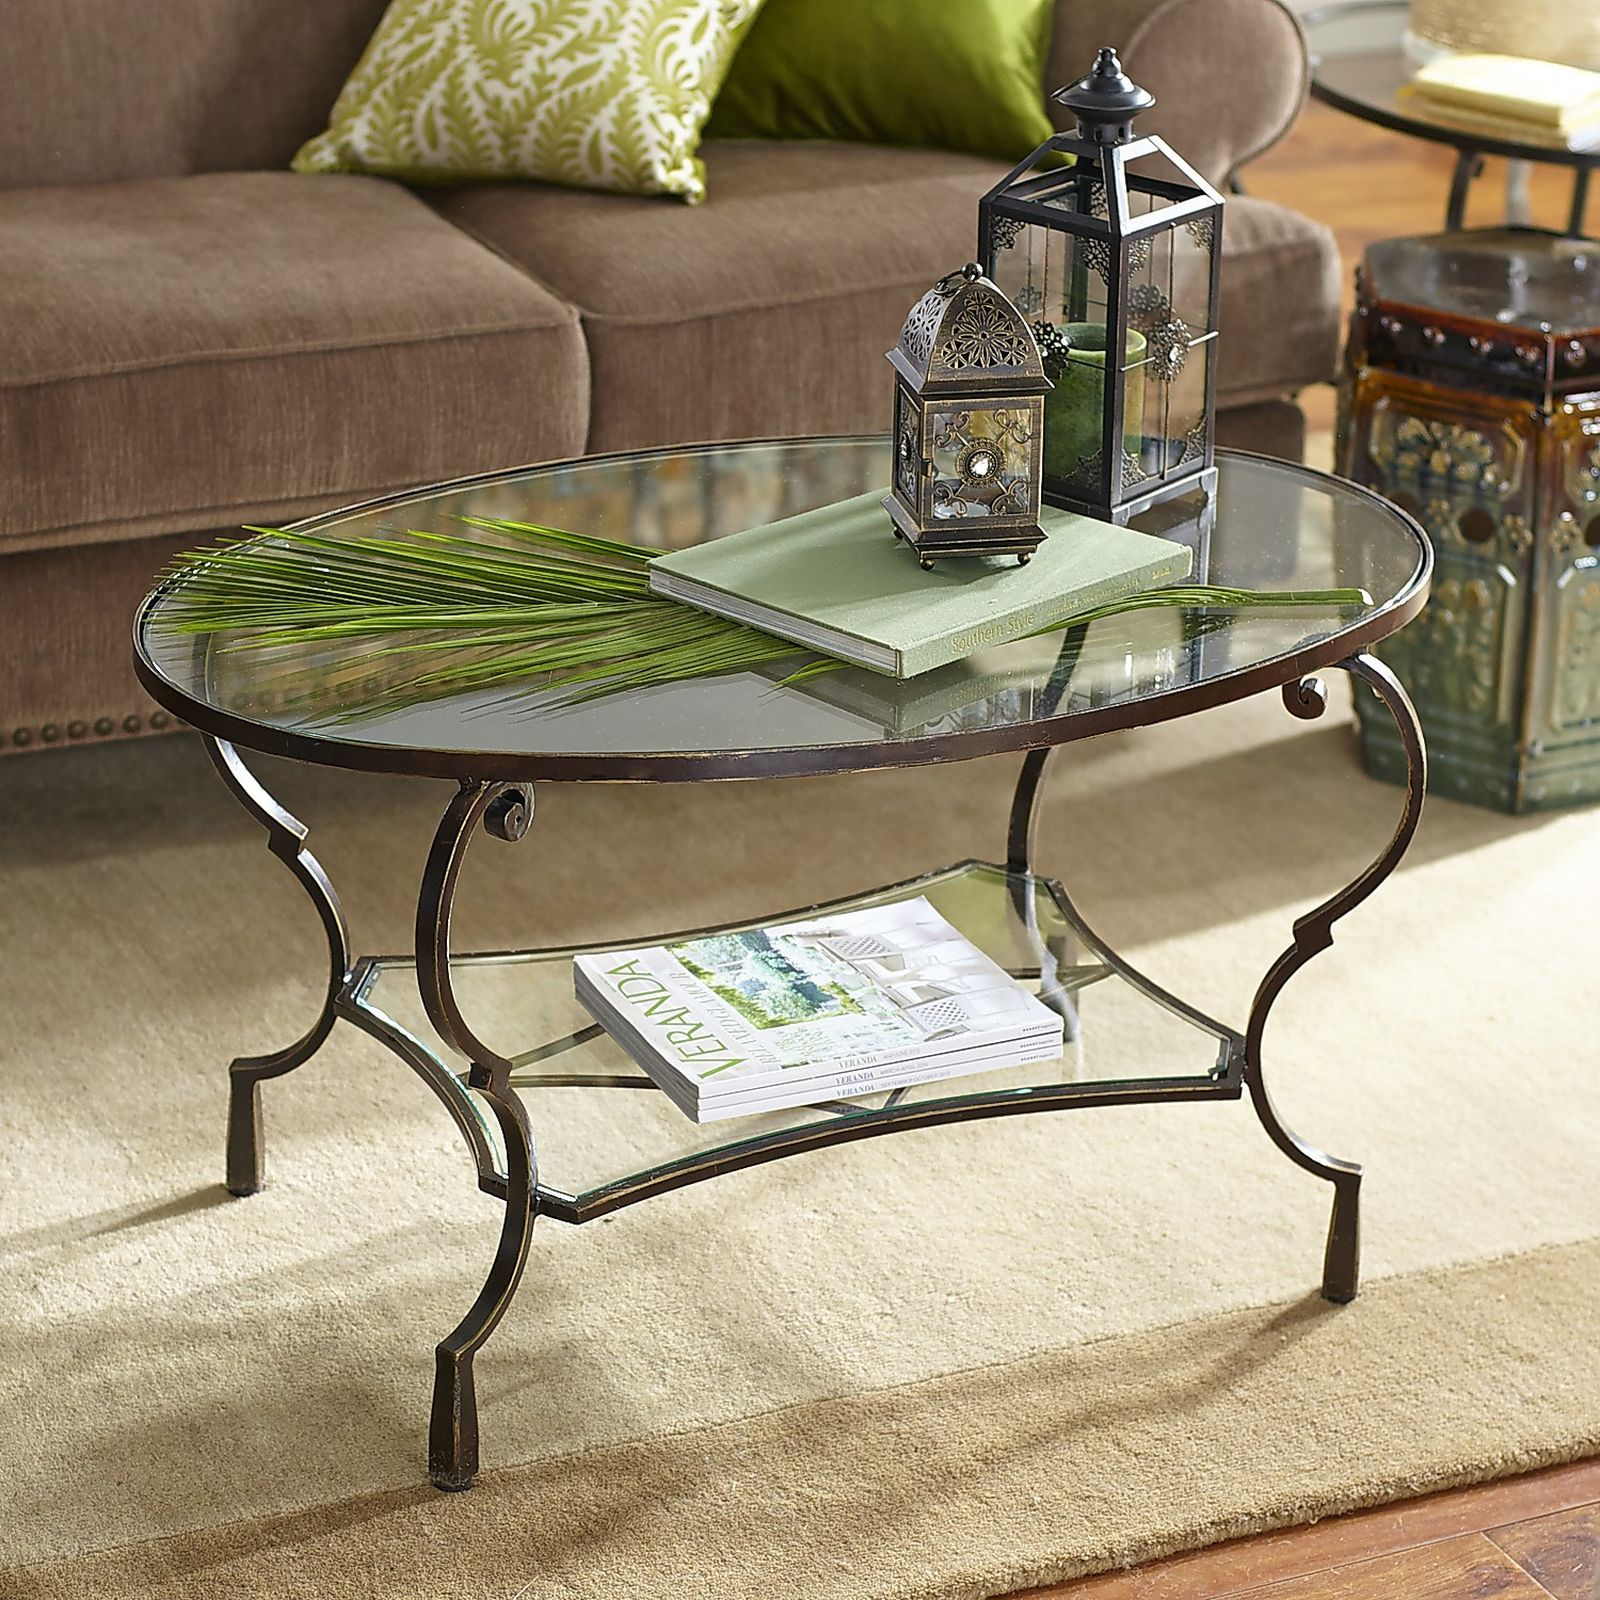 Ours Exclusively The Chasca Table Combines A Hand Forged Hand Painted Iron Base With Clear Dur Glass Coffee Table Decor Coffee Table Oval Glass Coffee Table [ 1600 x 1600 Pixel ]